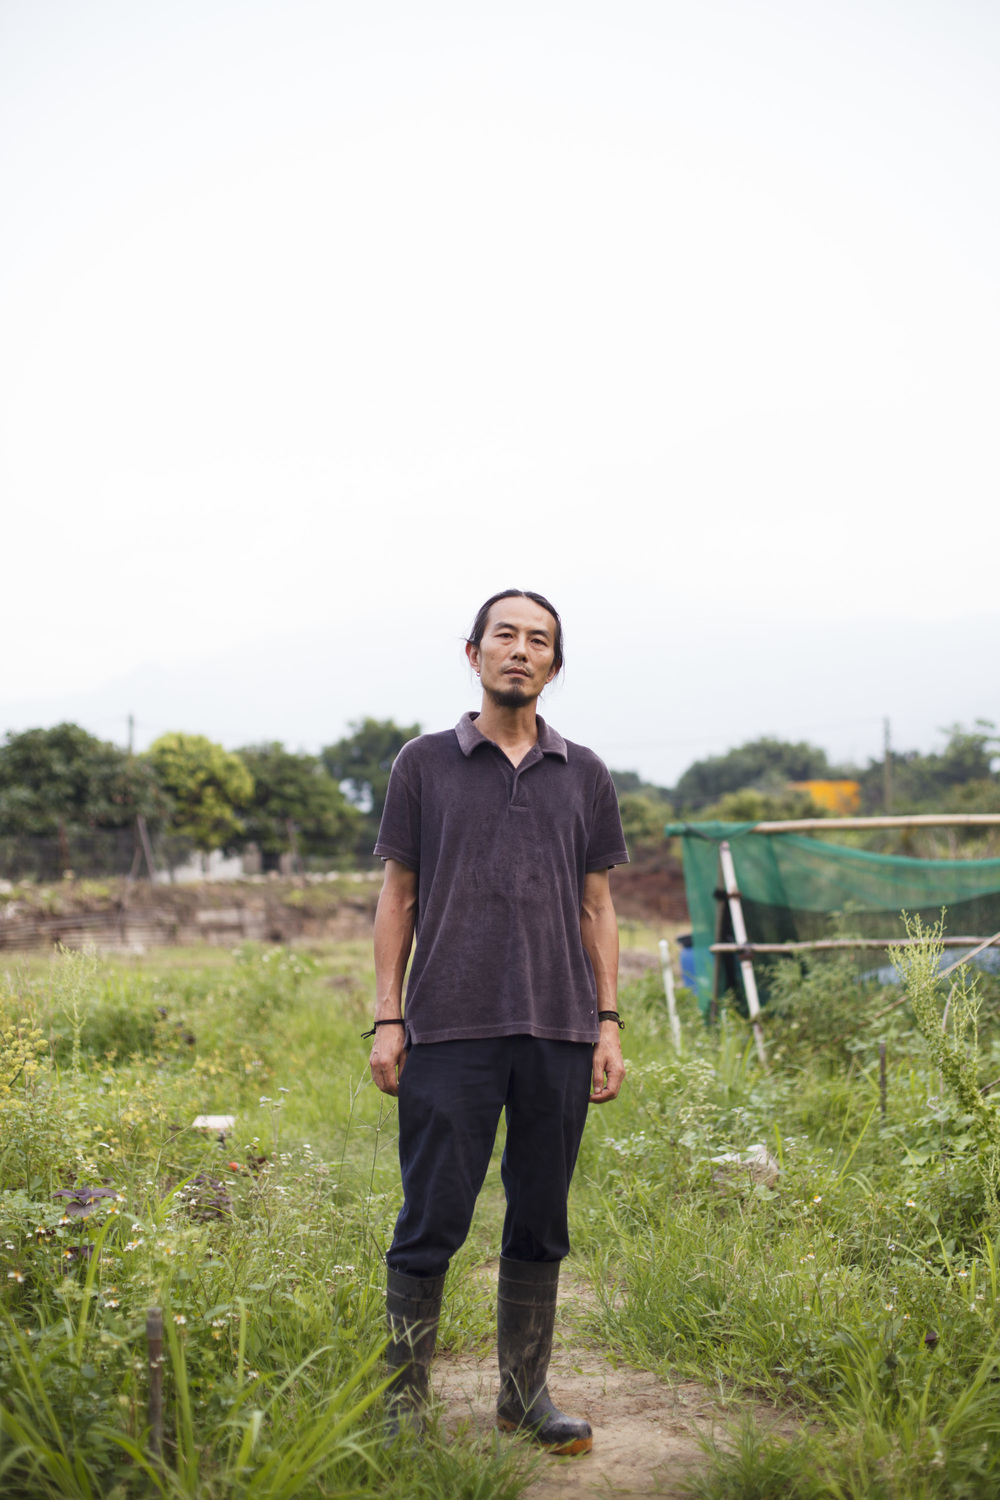 Steve Cheung, Owner of O-Veg standing in his farm in the Kam Tin in the New Territories, Hong Kong.